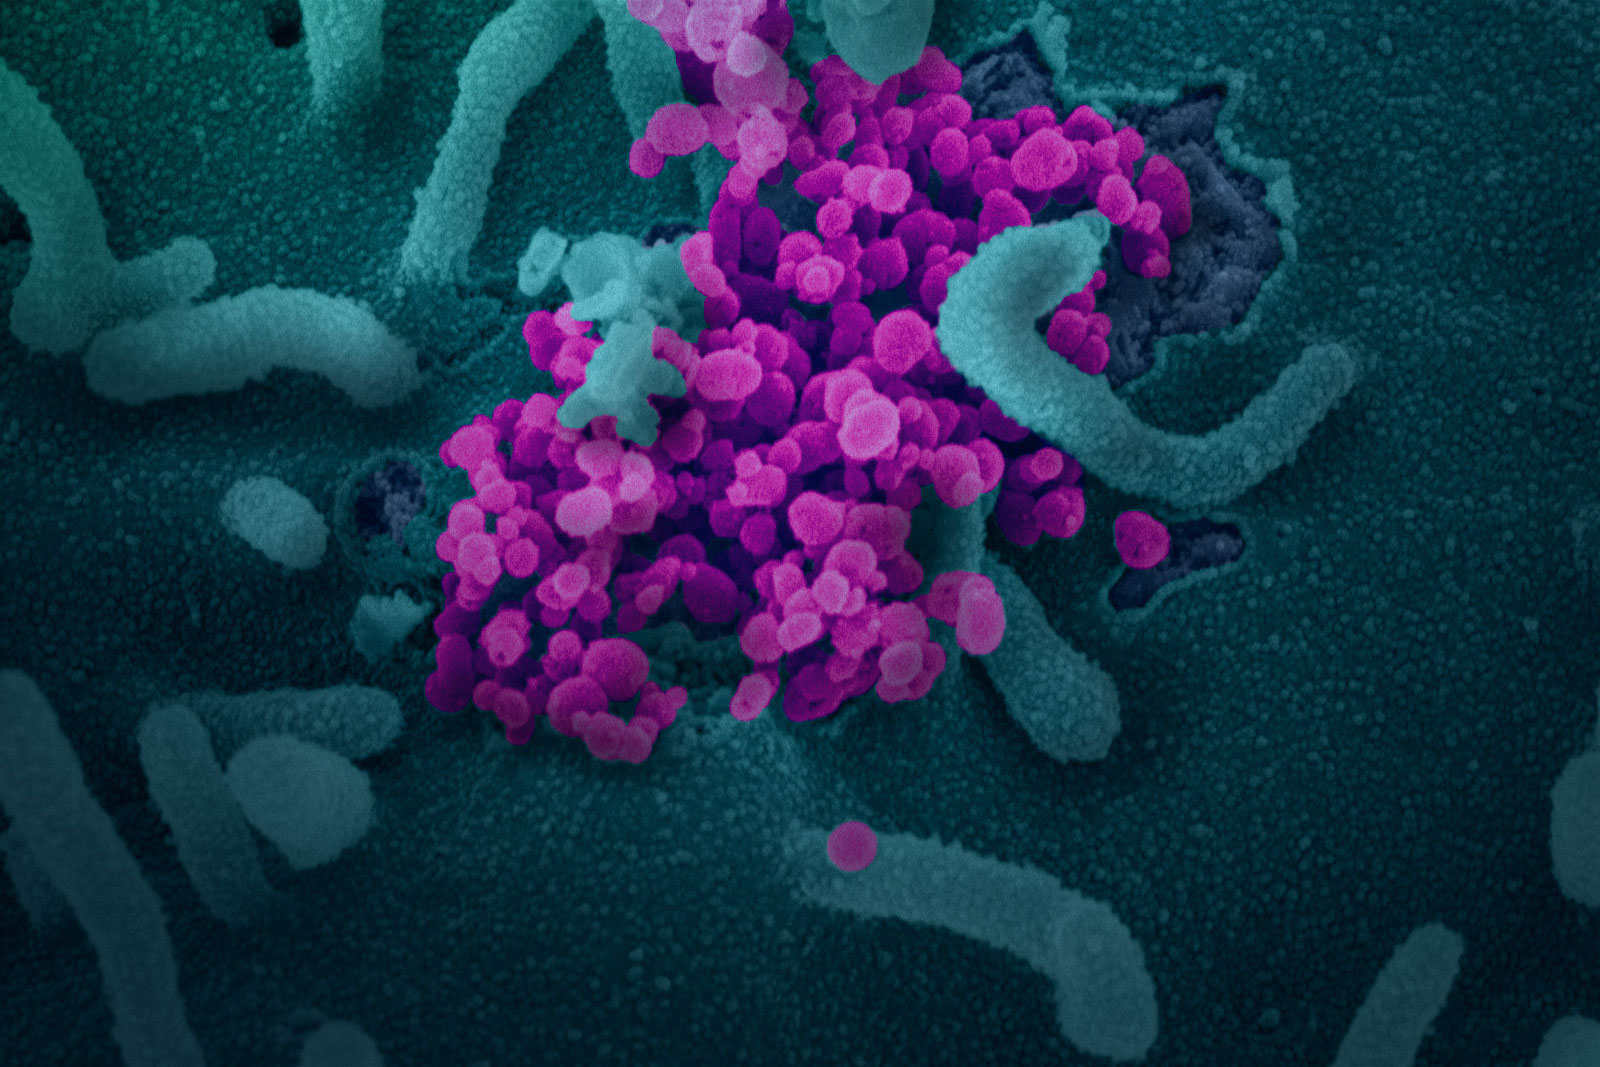 This scanning electron microscope image shows SARS-CoV-2, isolated from a patient in the U.S., emerging from the surface of cells cultured in the lab. Credit: NIAID-RML